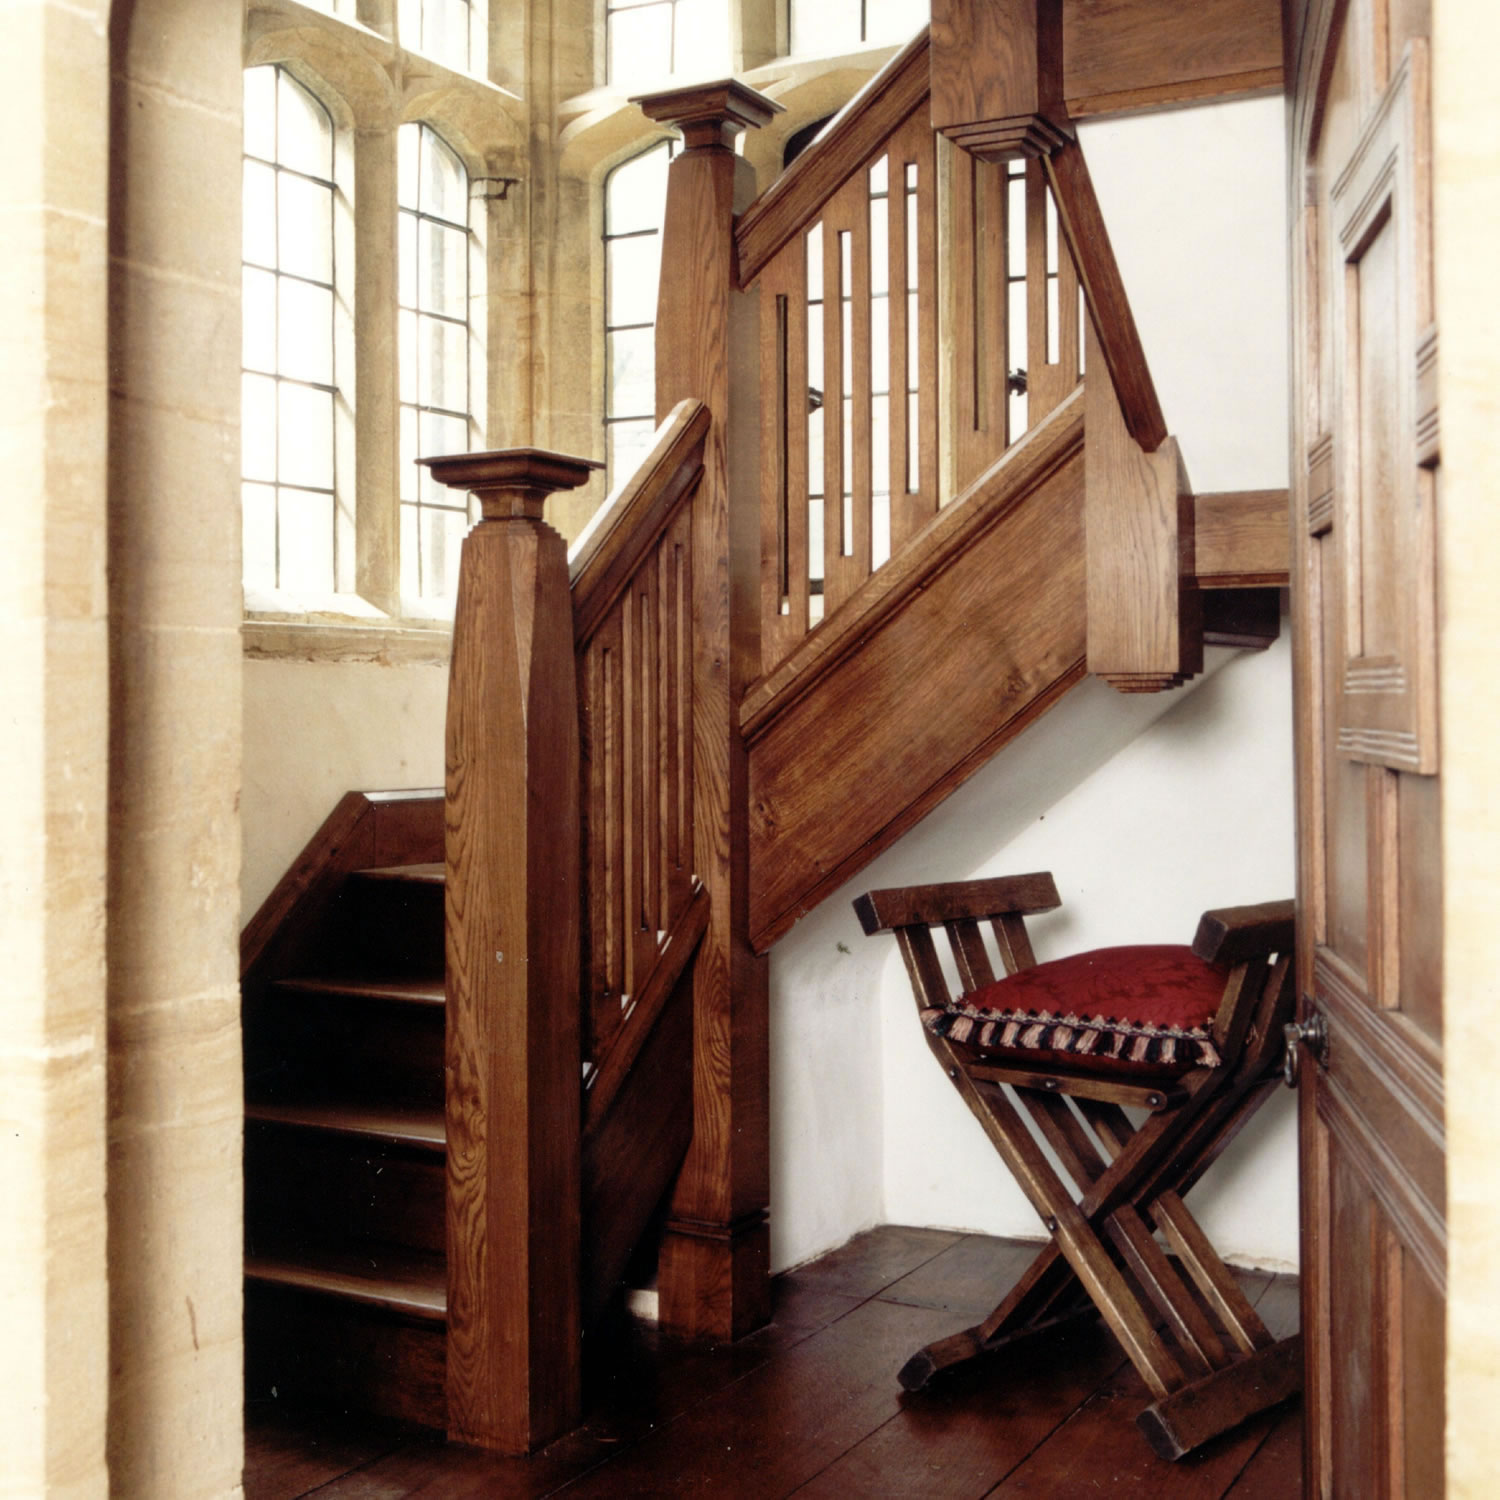 Arts & Crafts style oak staircase, designed and installed for the National Trust